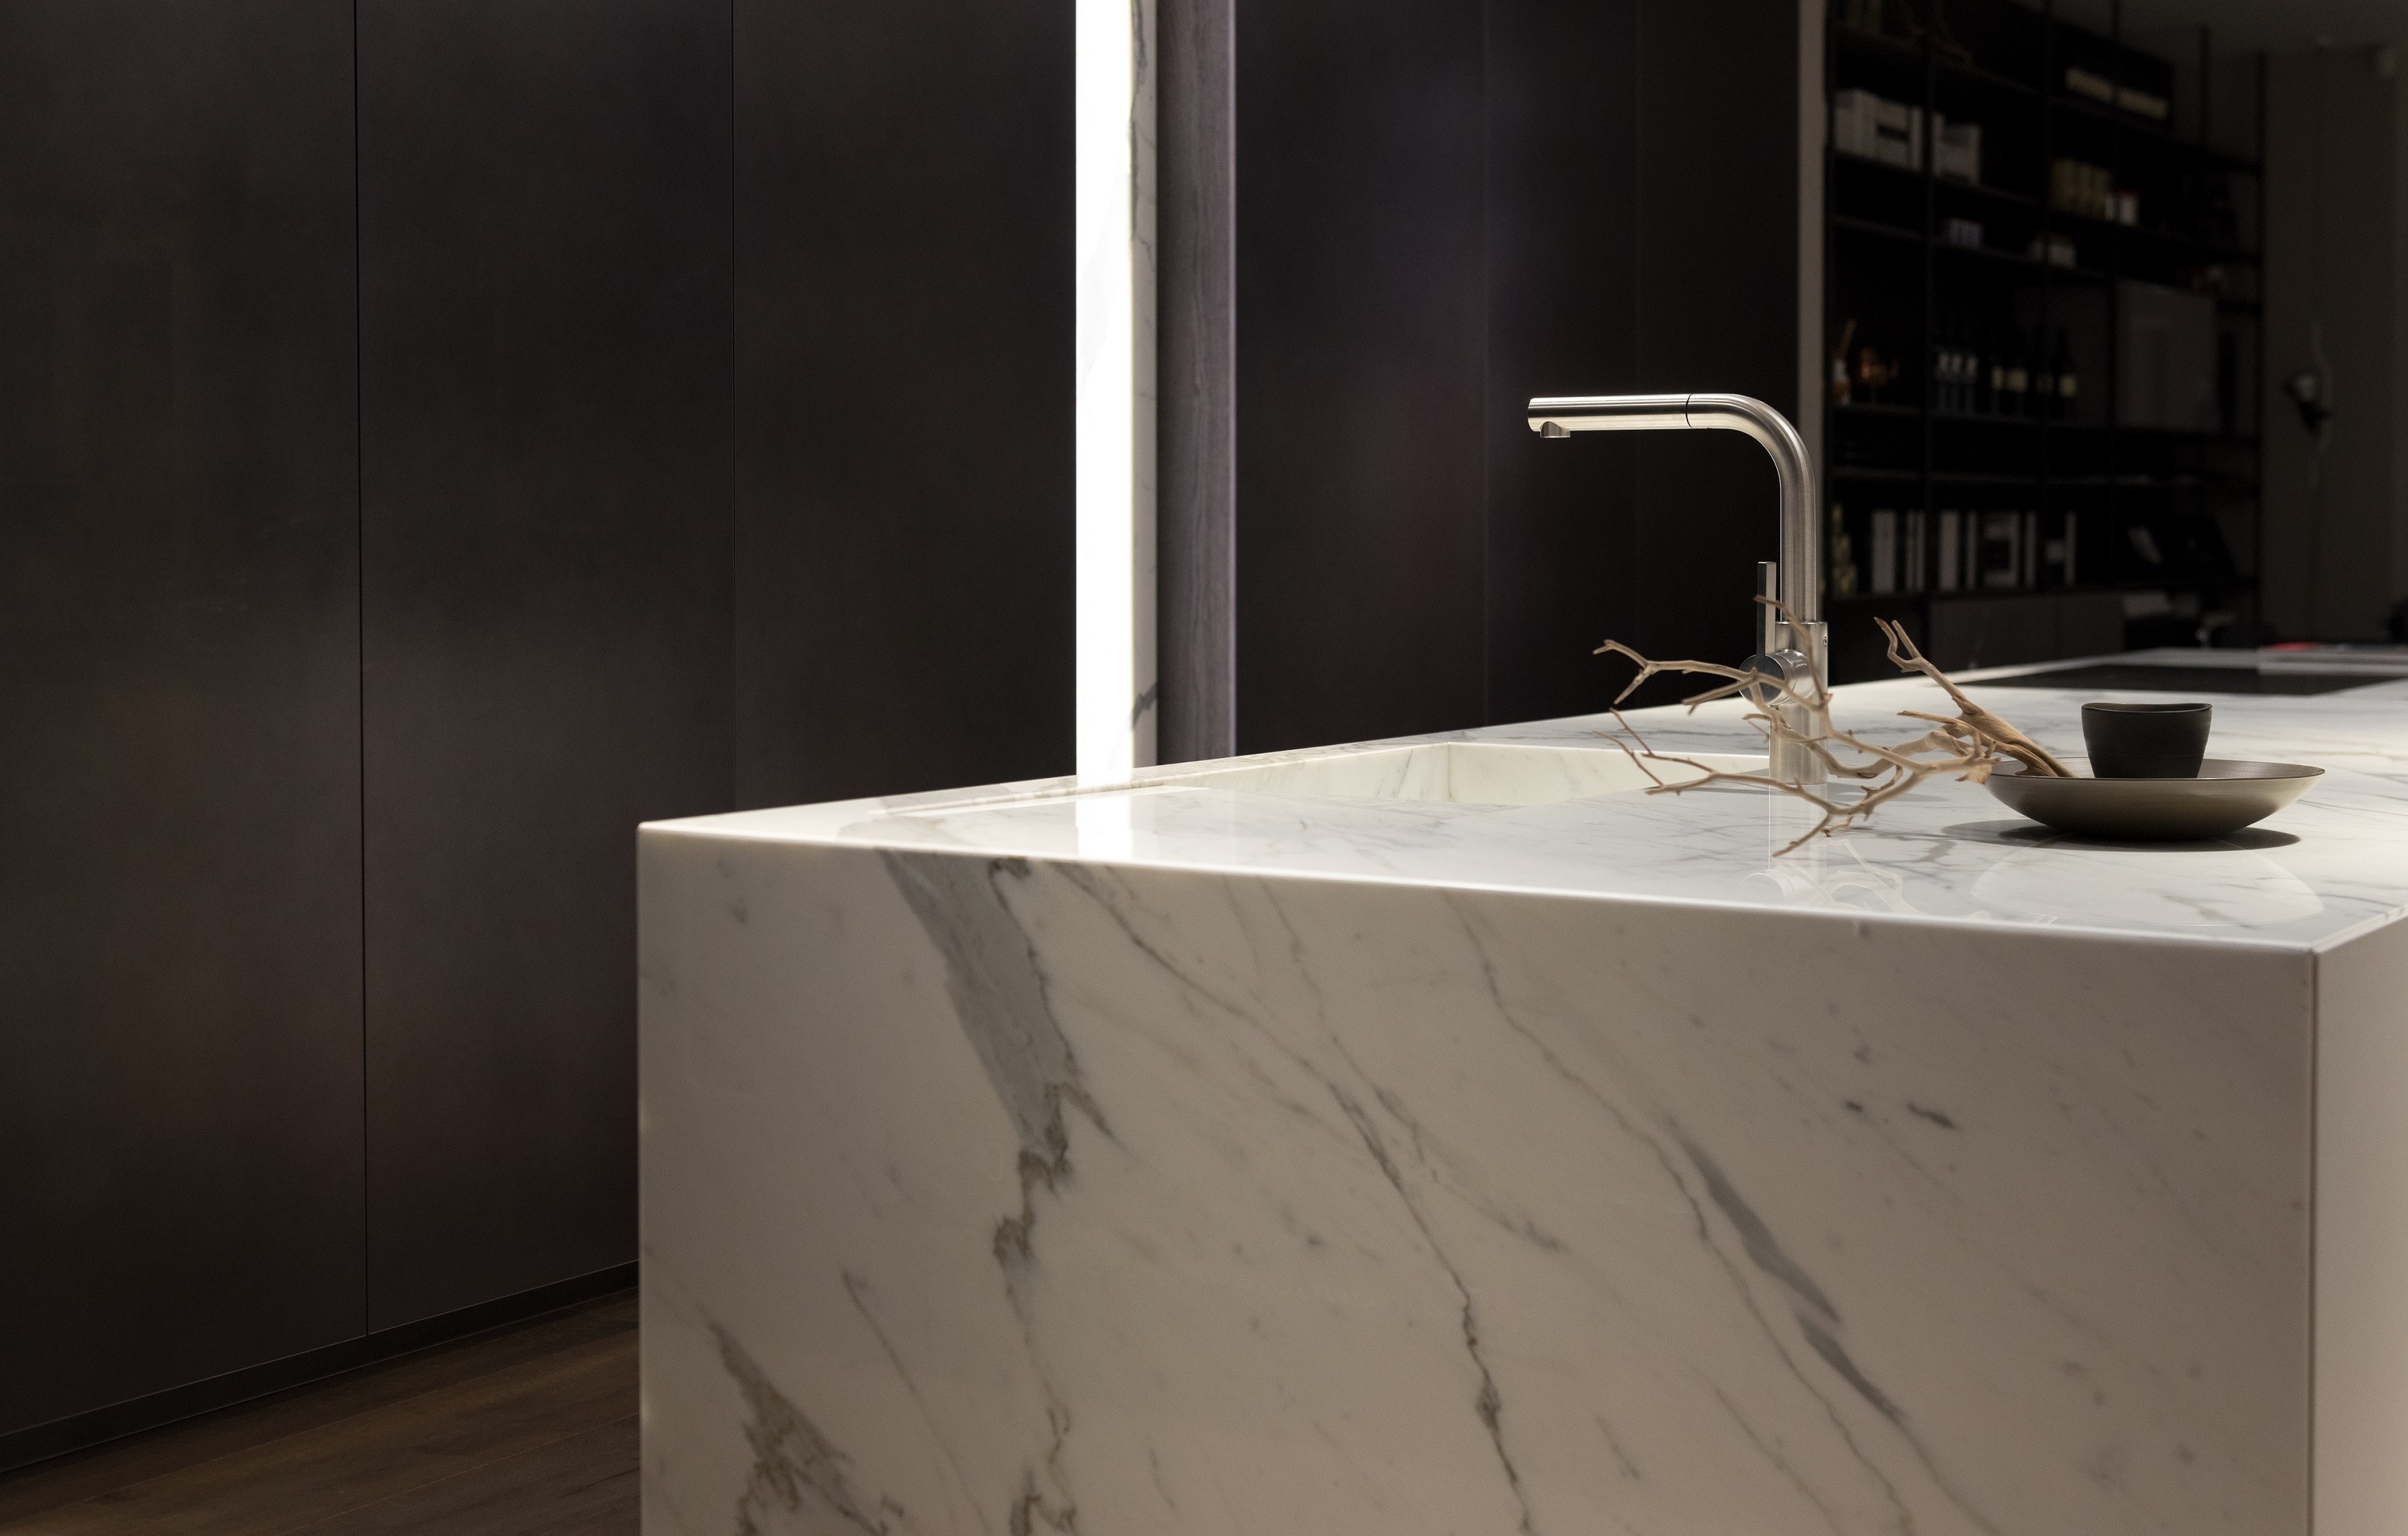 White marble countertop on dark background